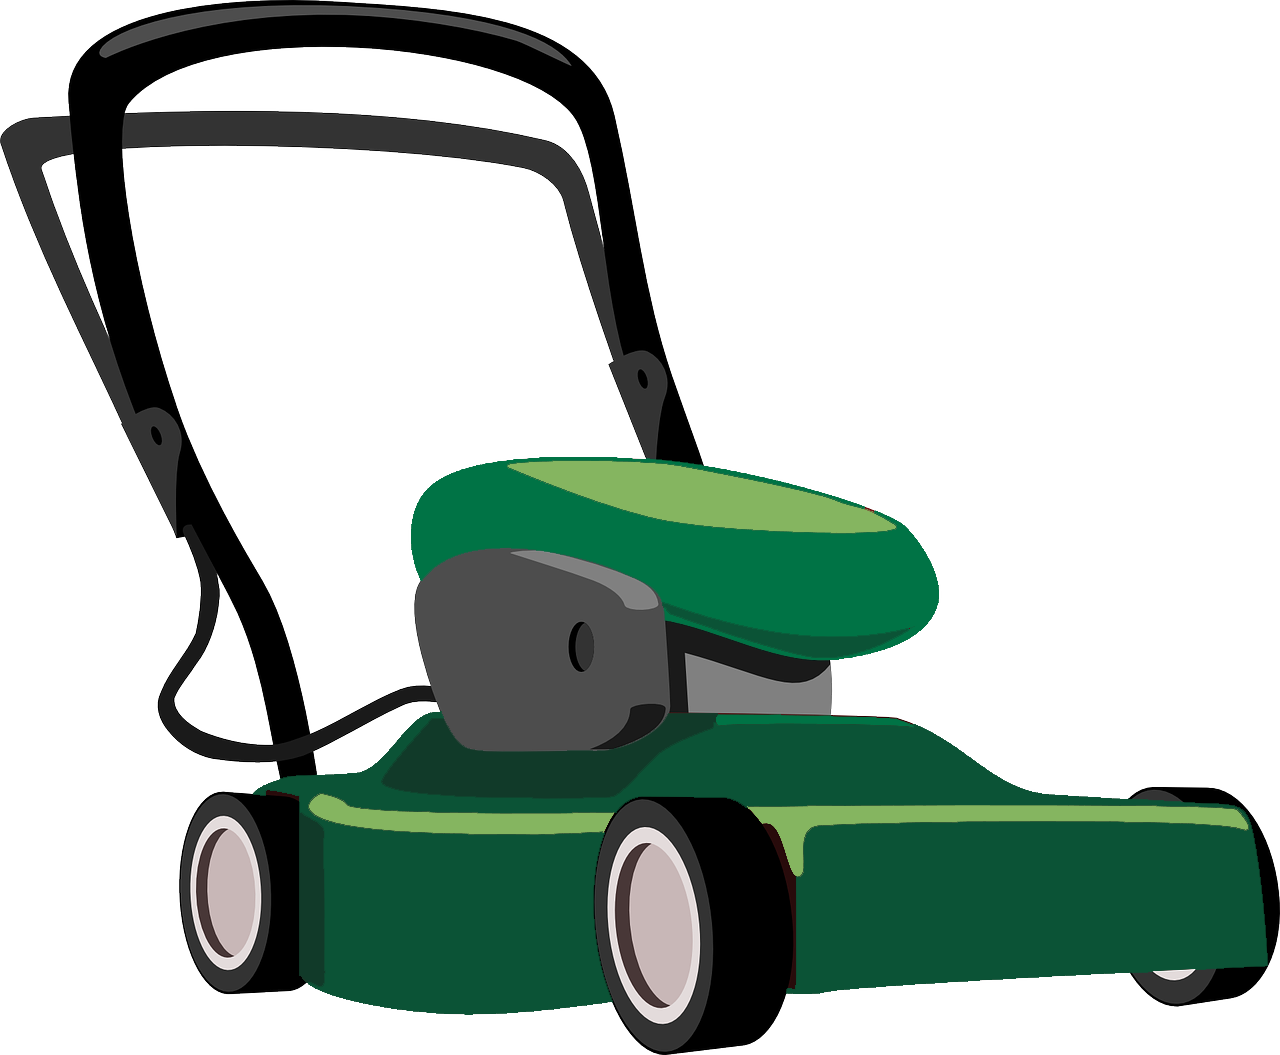 royalty free library The garden co quality. Lawnmower clipart green.